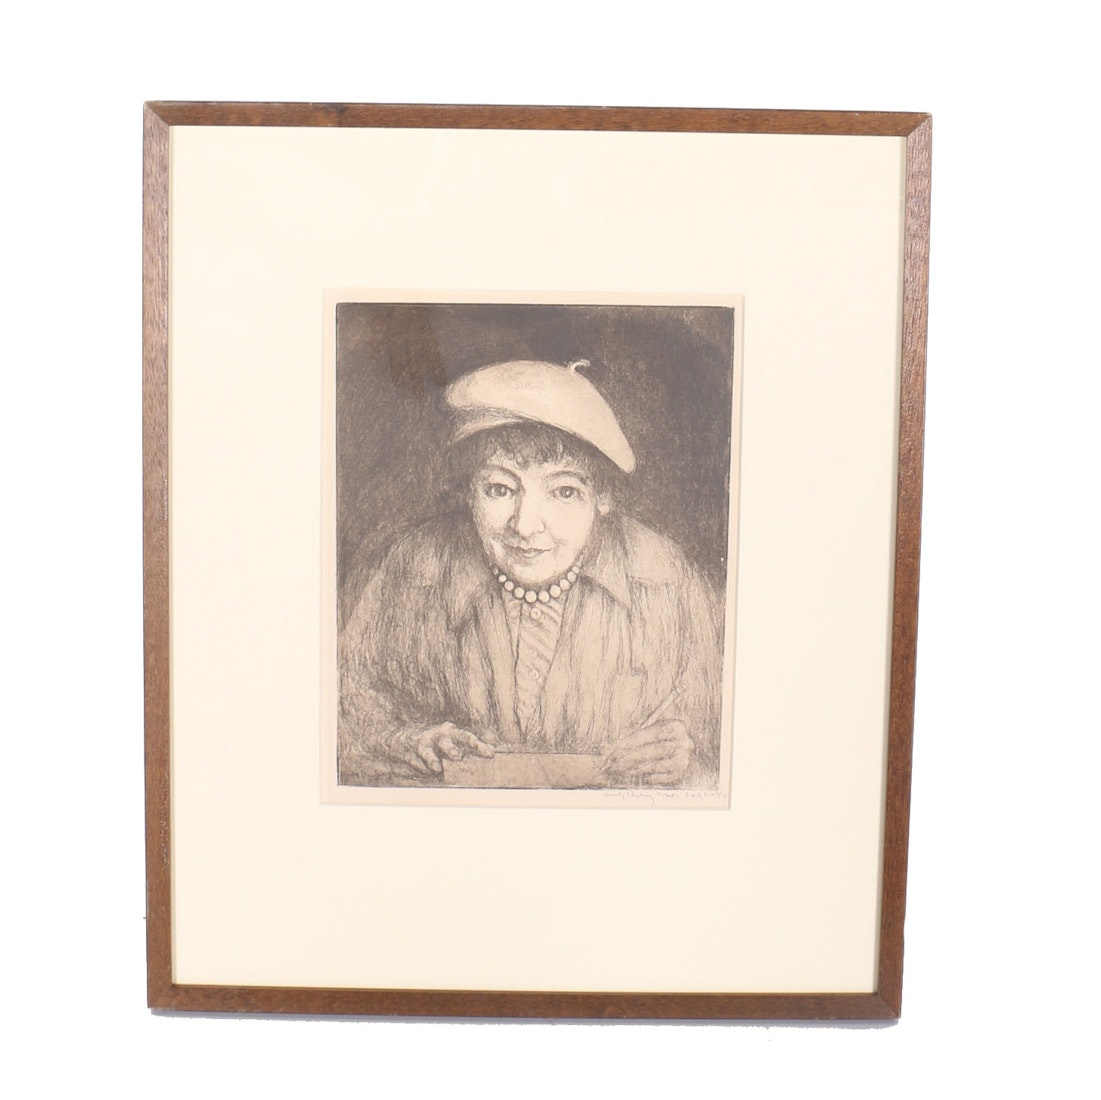 Emily Burling Waite Etching on Paper Self-portrait